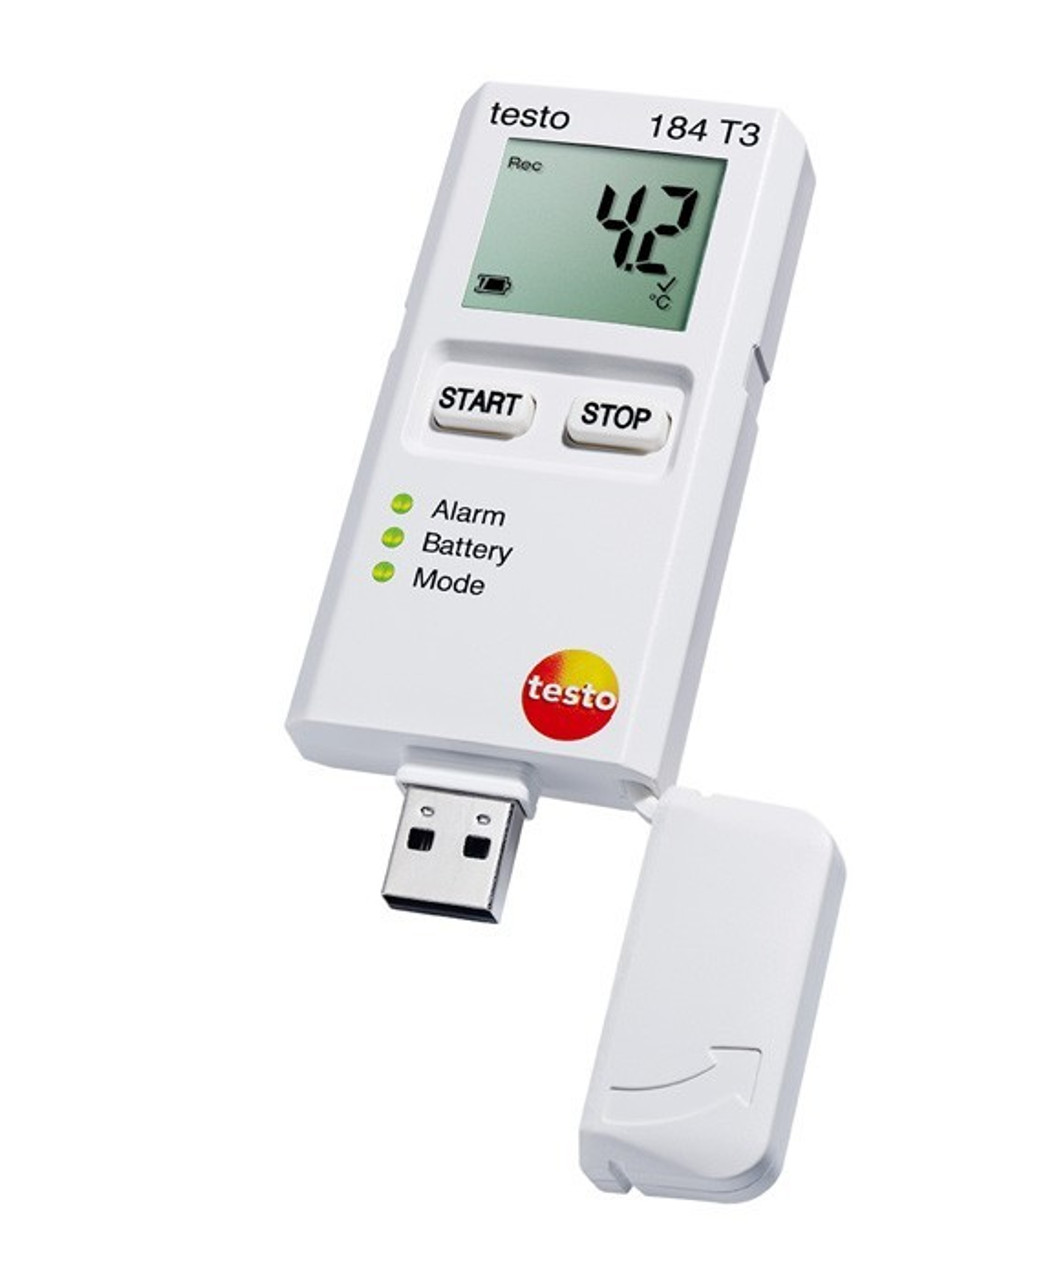 Testo 184 T3 temperature data logger - USB connection.